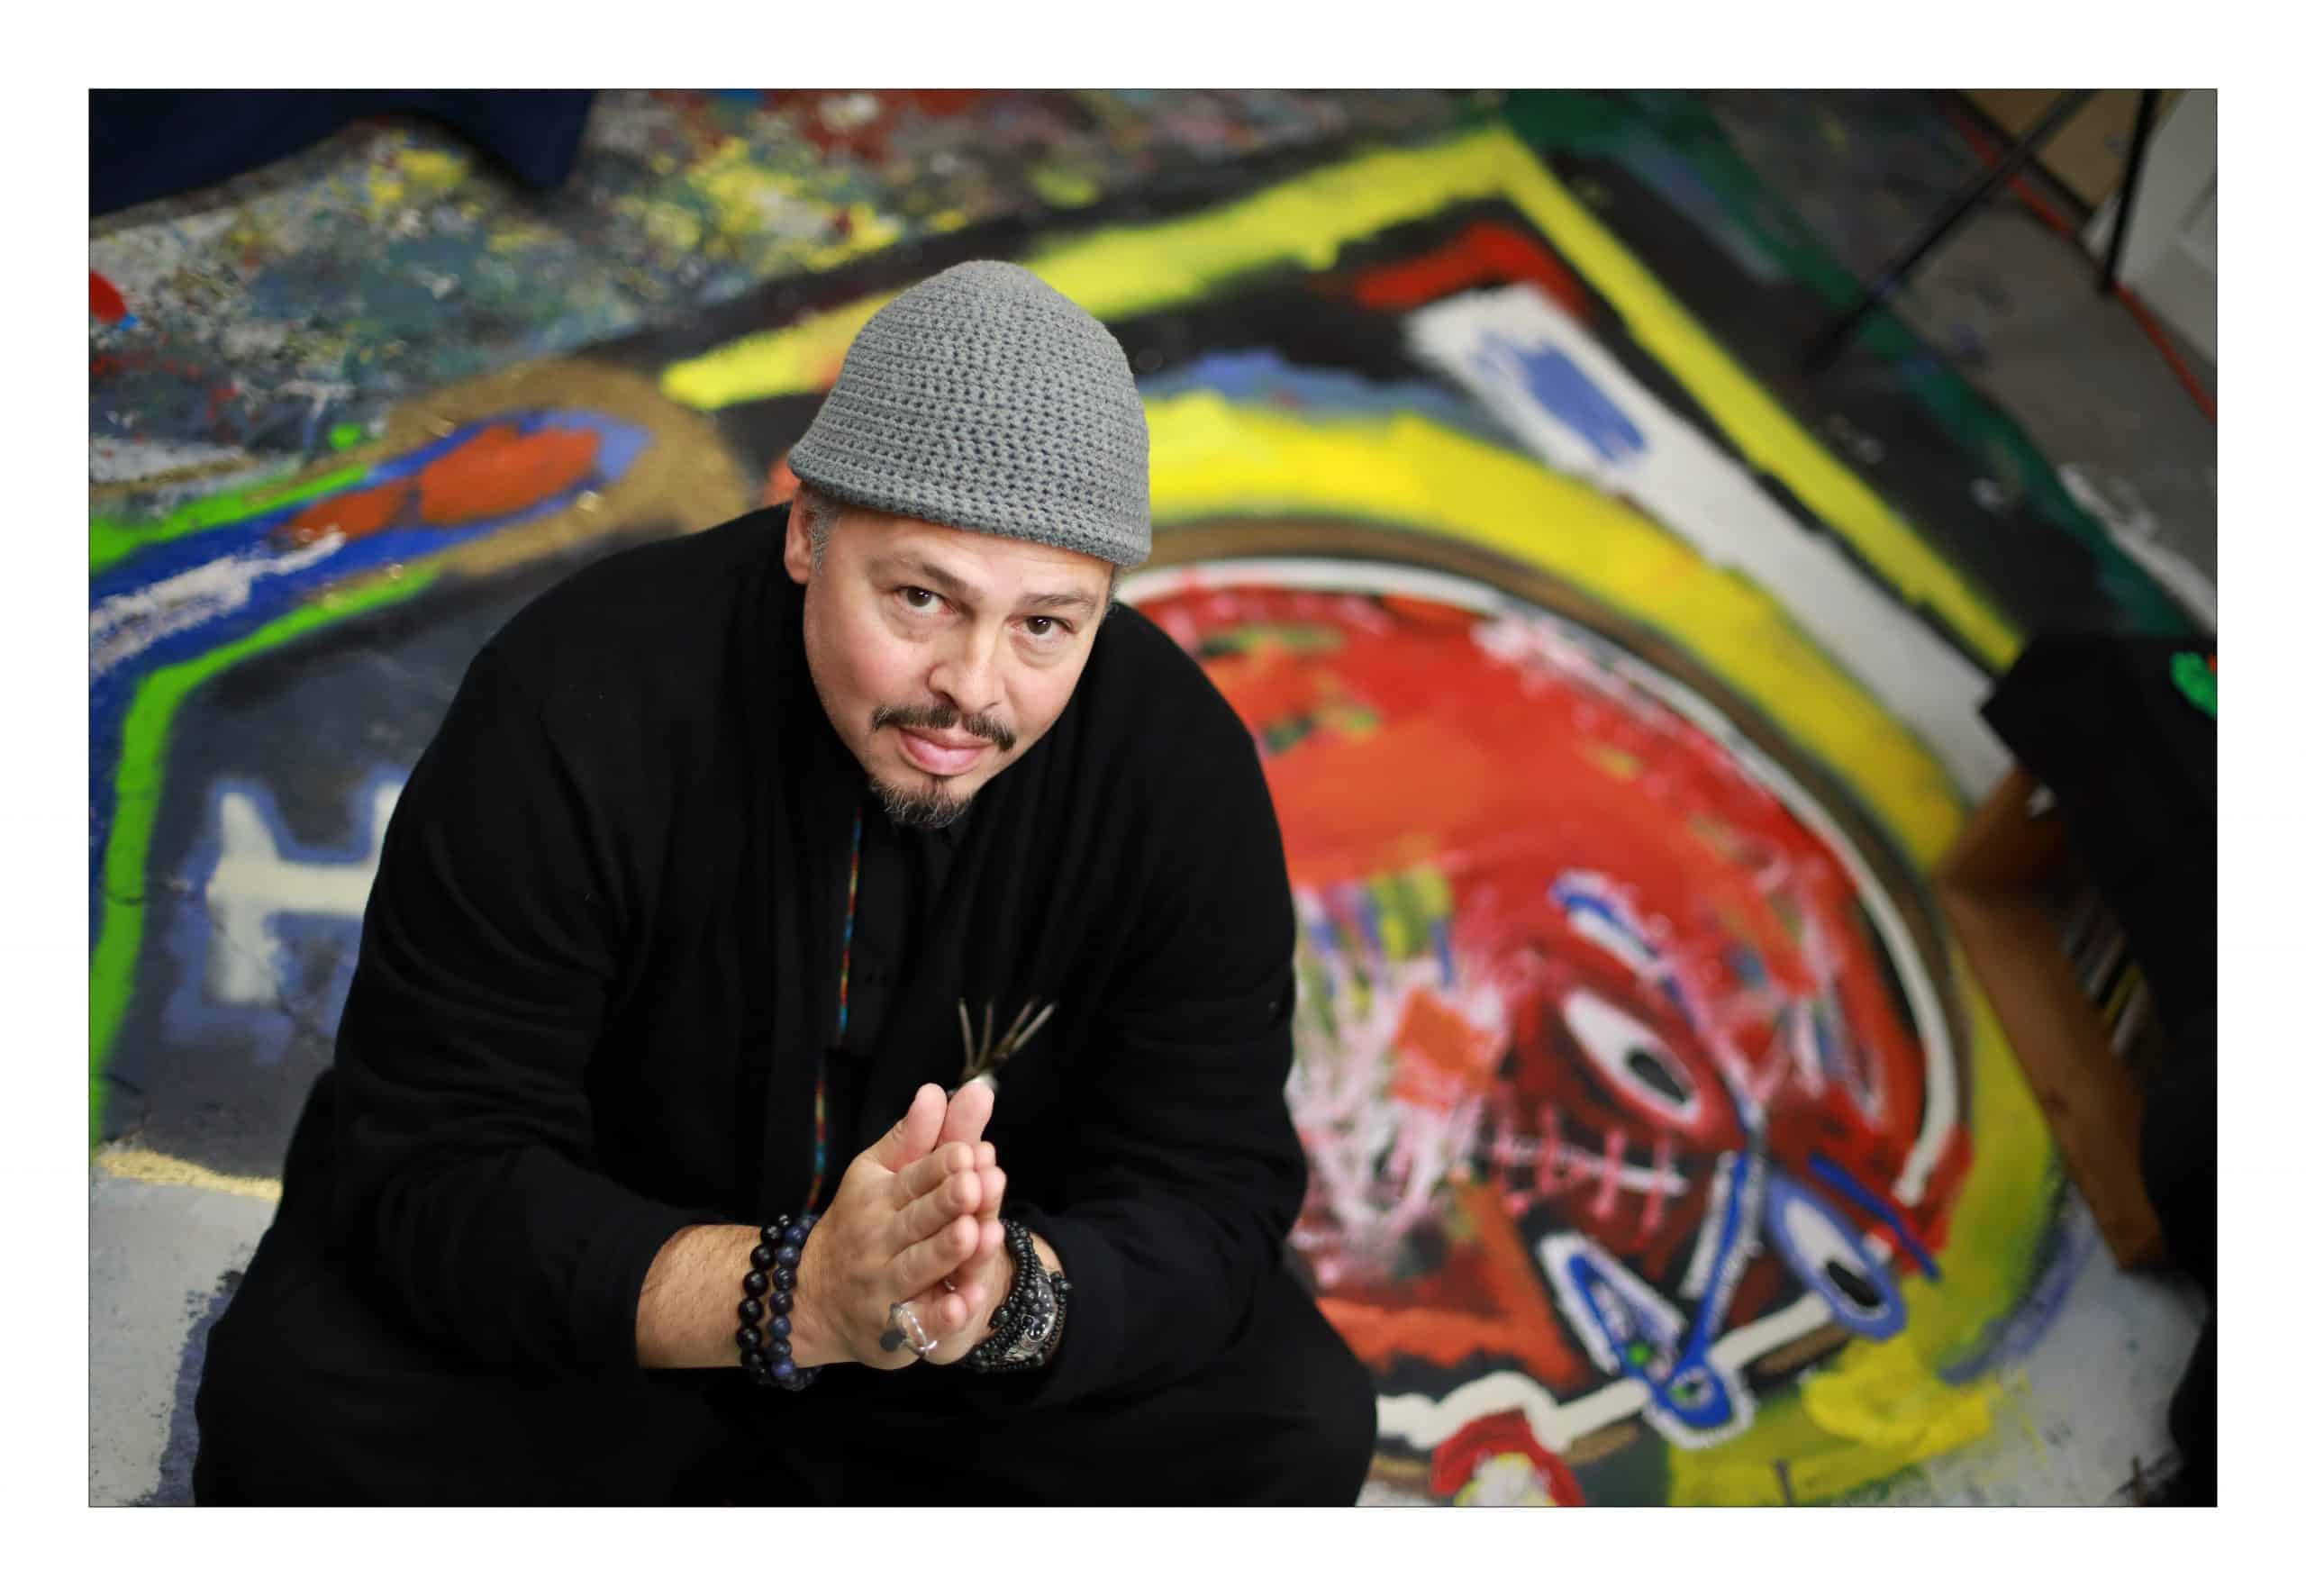 Latino Artist Speaks Universal Language Through Jazz-Themed Art